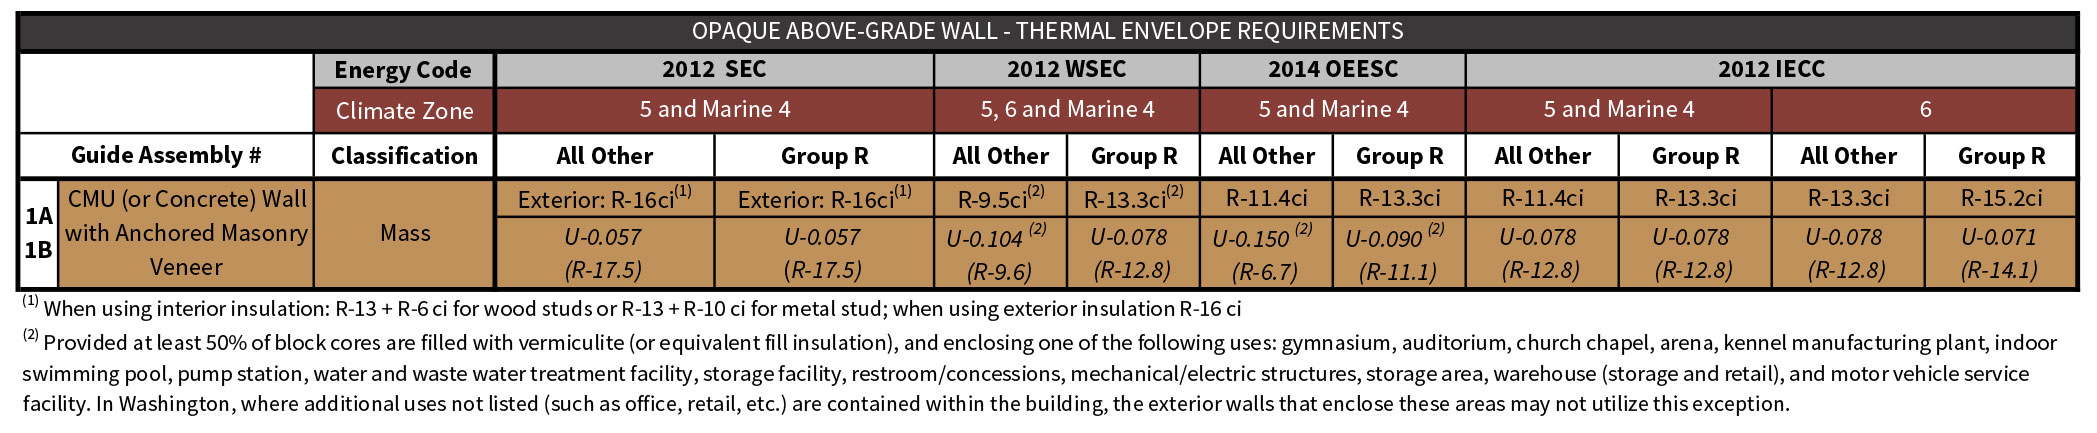 Table 1-3 Assembly 1 prescriptive energy code compliance values excerpted from Table i-1 of the Introduction Chapter.